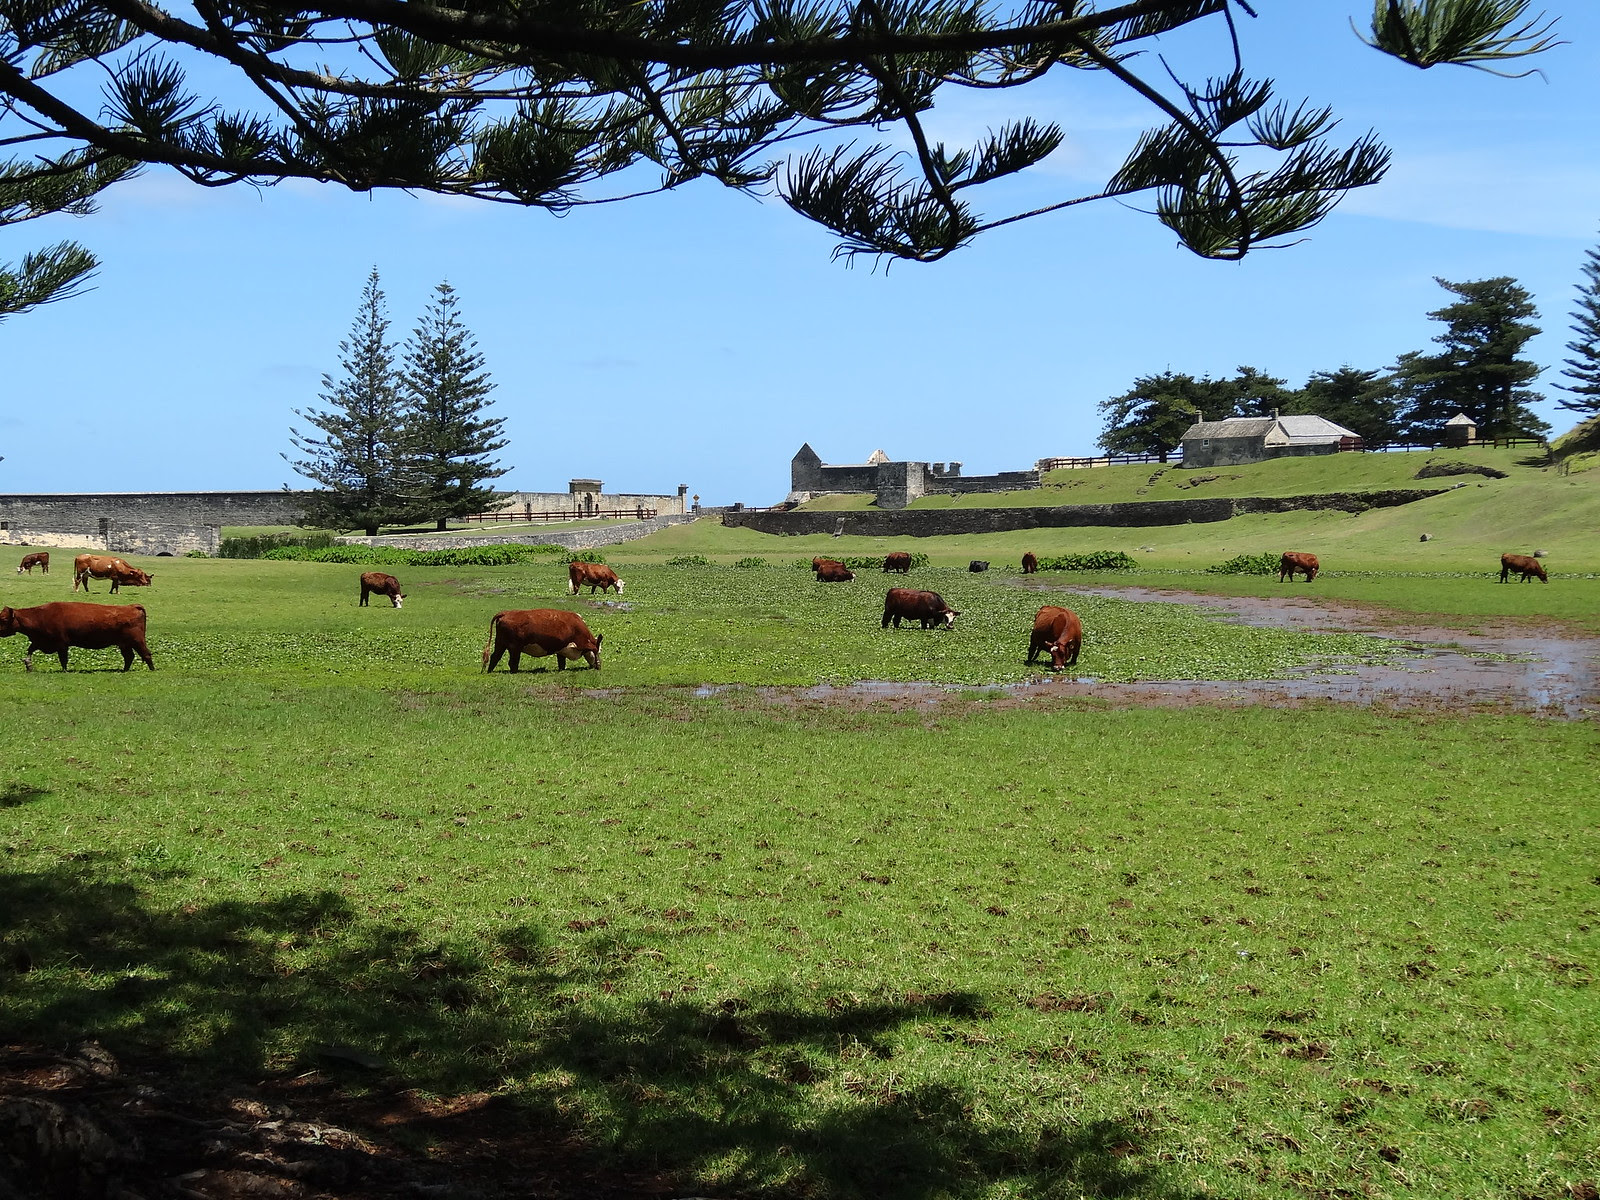 Cattle, swamps and Norfolk Island pine trees on Norfolk Island